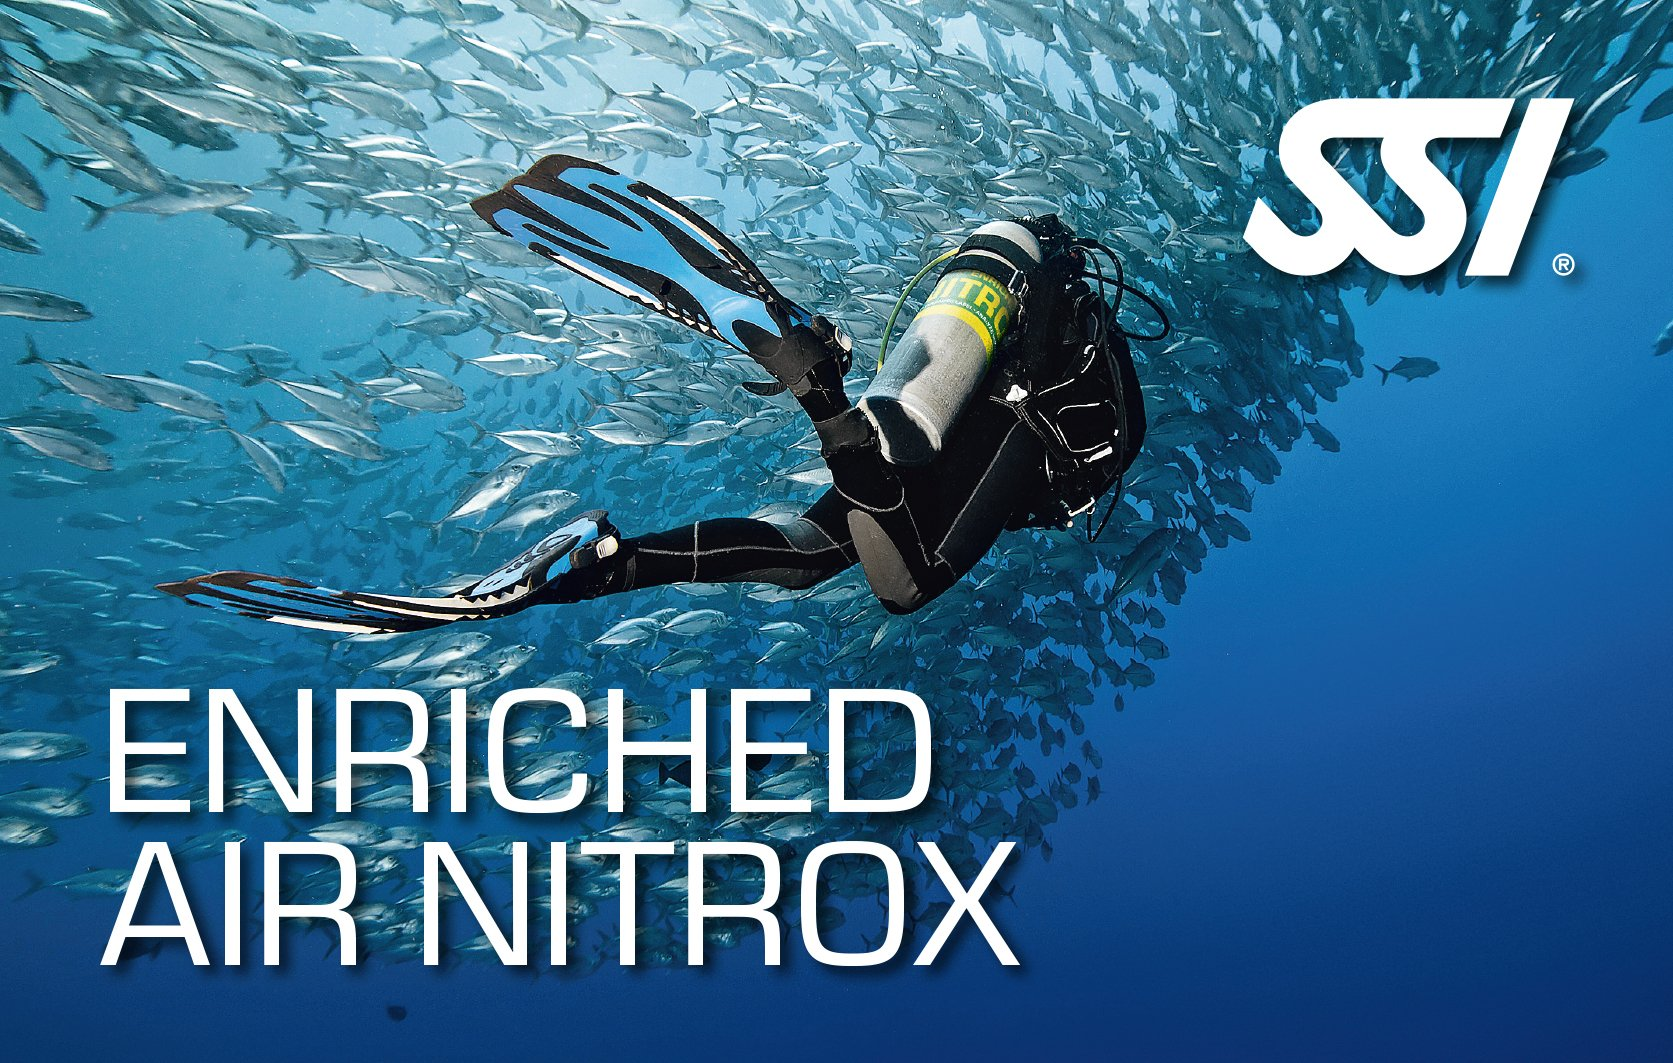 enriched air nitrox Ssi course in Mauritius